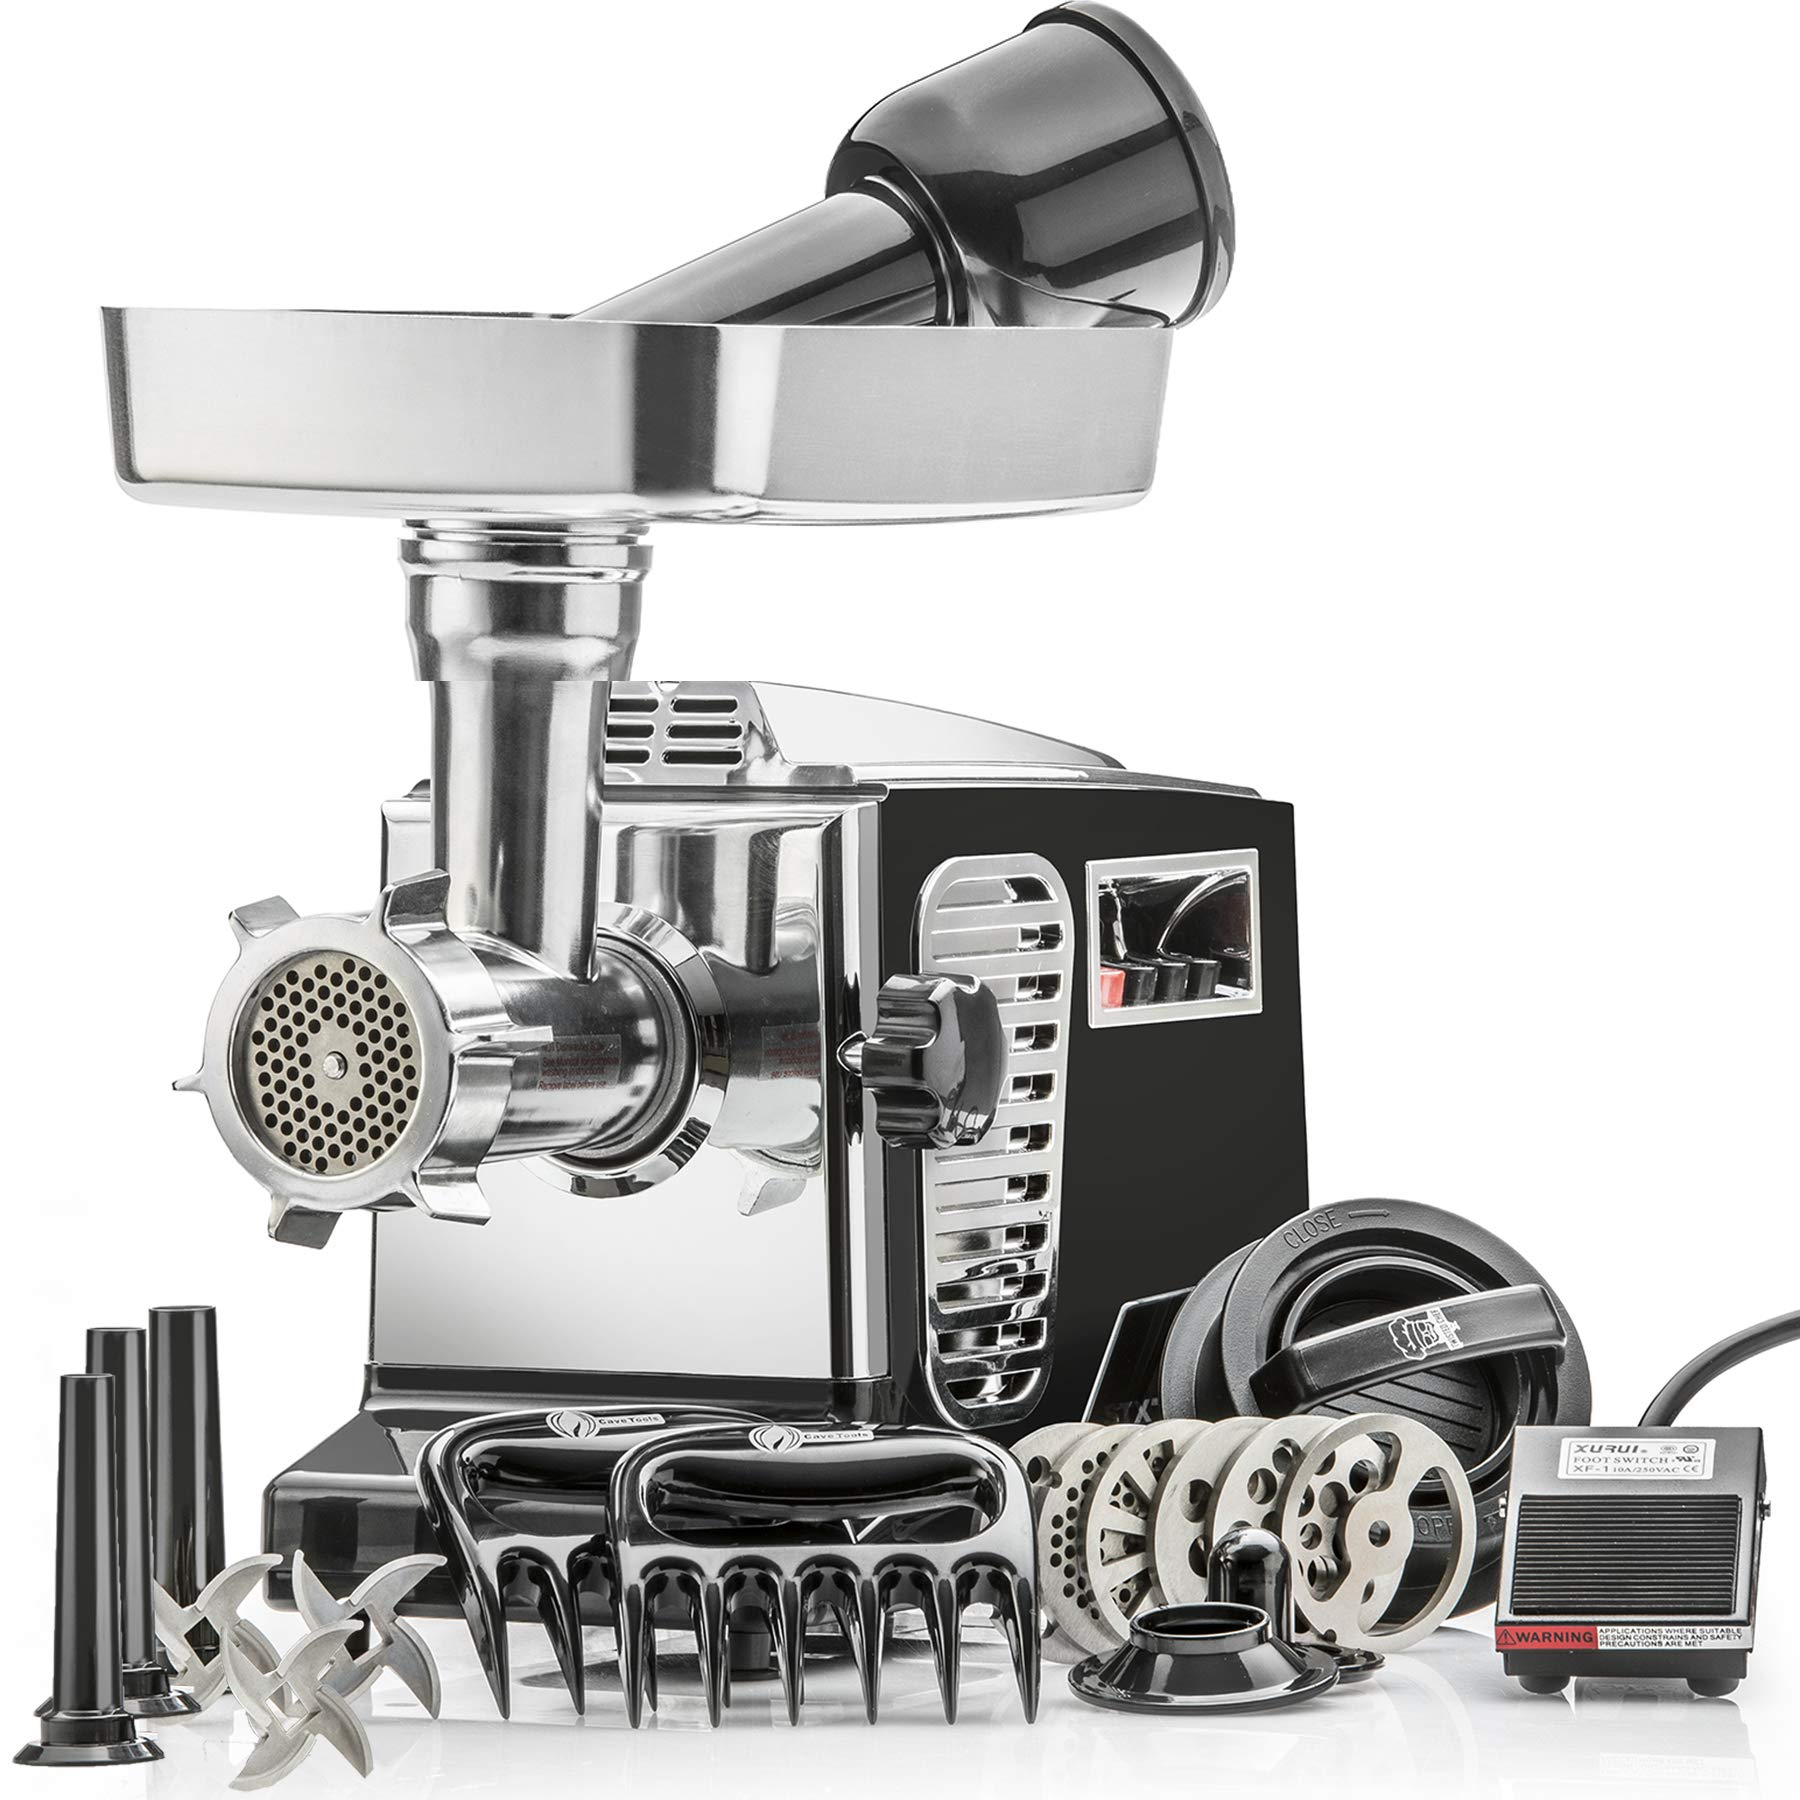 STX Turboforce II''Platinum'' w/Foot Pedal Heavy Duty Electric Meat Grinder & Sausage Stuffer: 6 Grinding Plates, 3 S/S Blades, 3 Sausage Tubes, Kubbe, 2 Meat Claws, Burger-Slider Patty Maker - Black by STX INTERNATIONAL